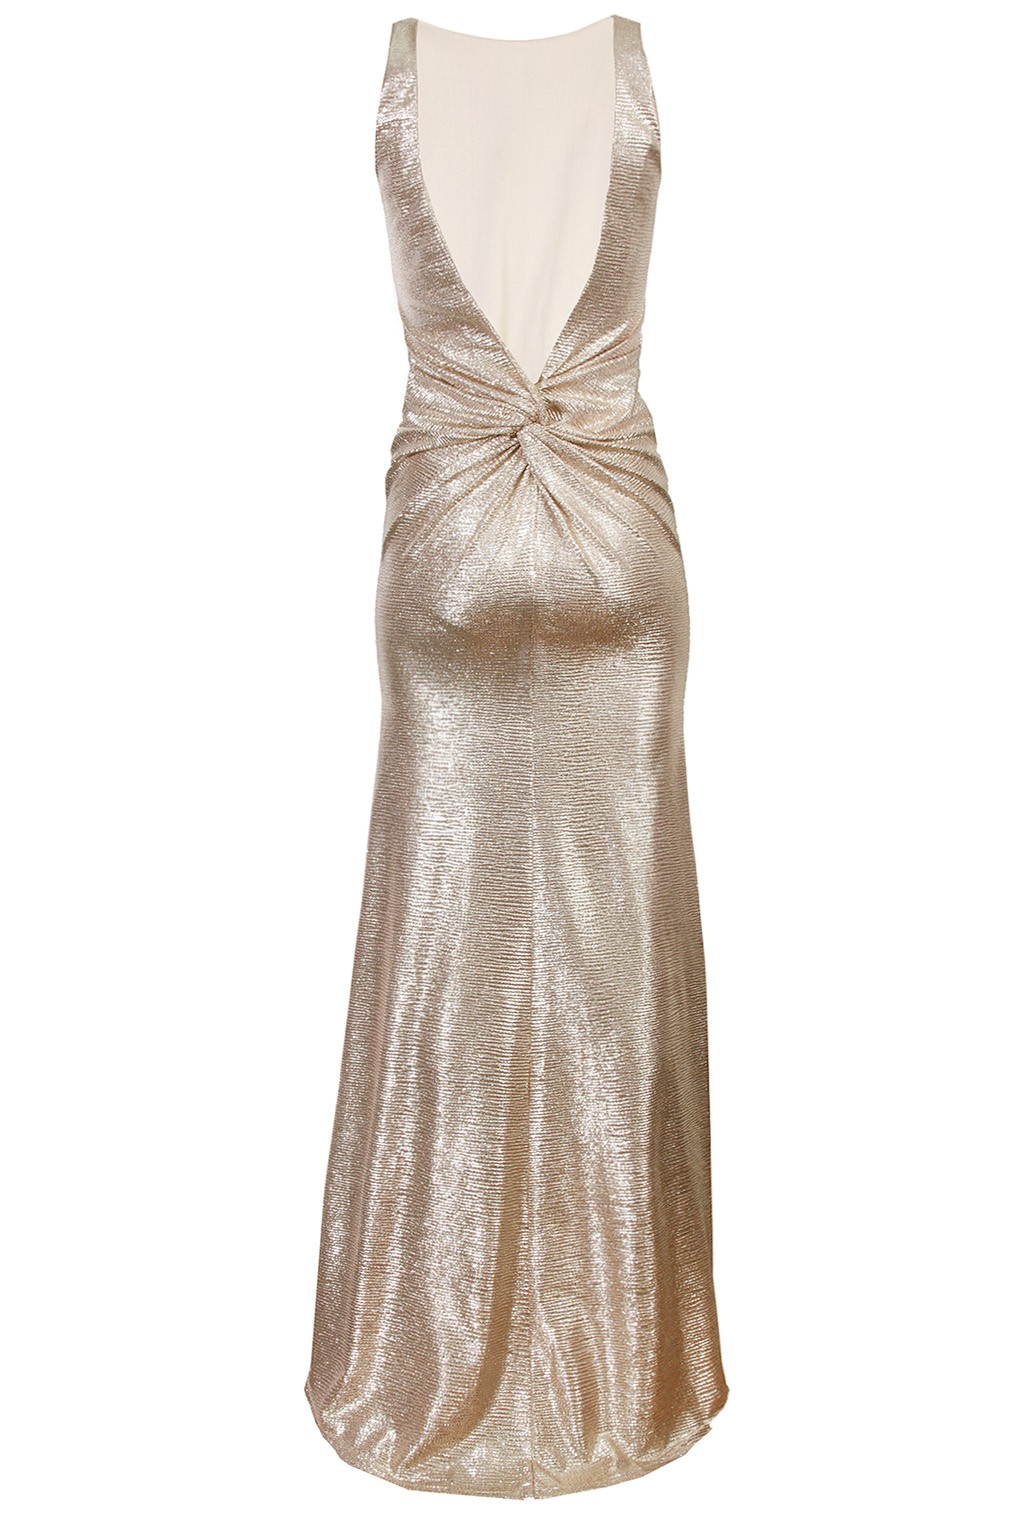 Tfnc white and gold dress